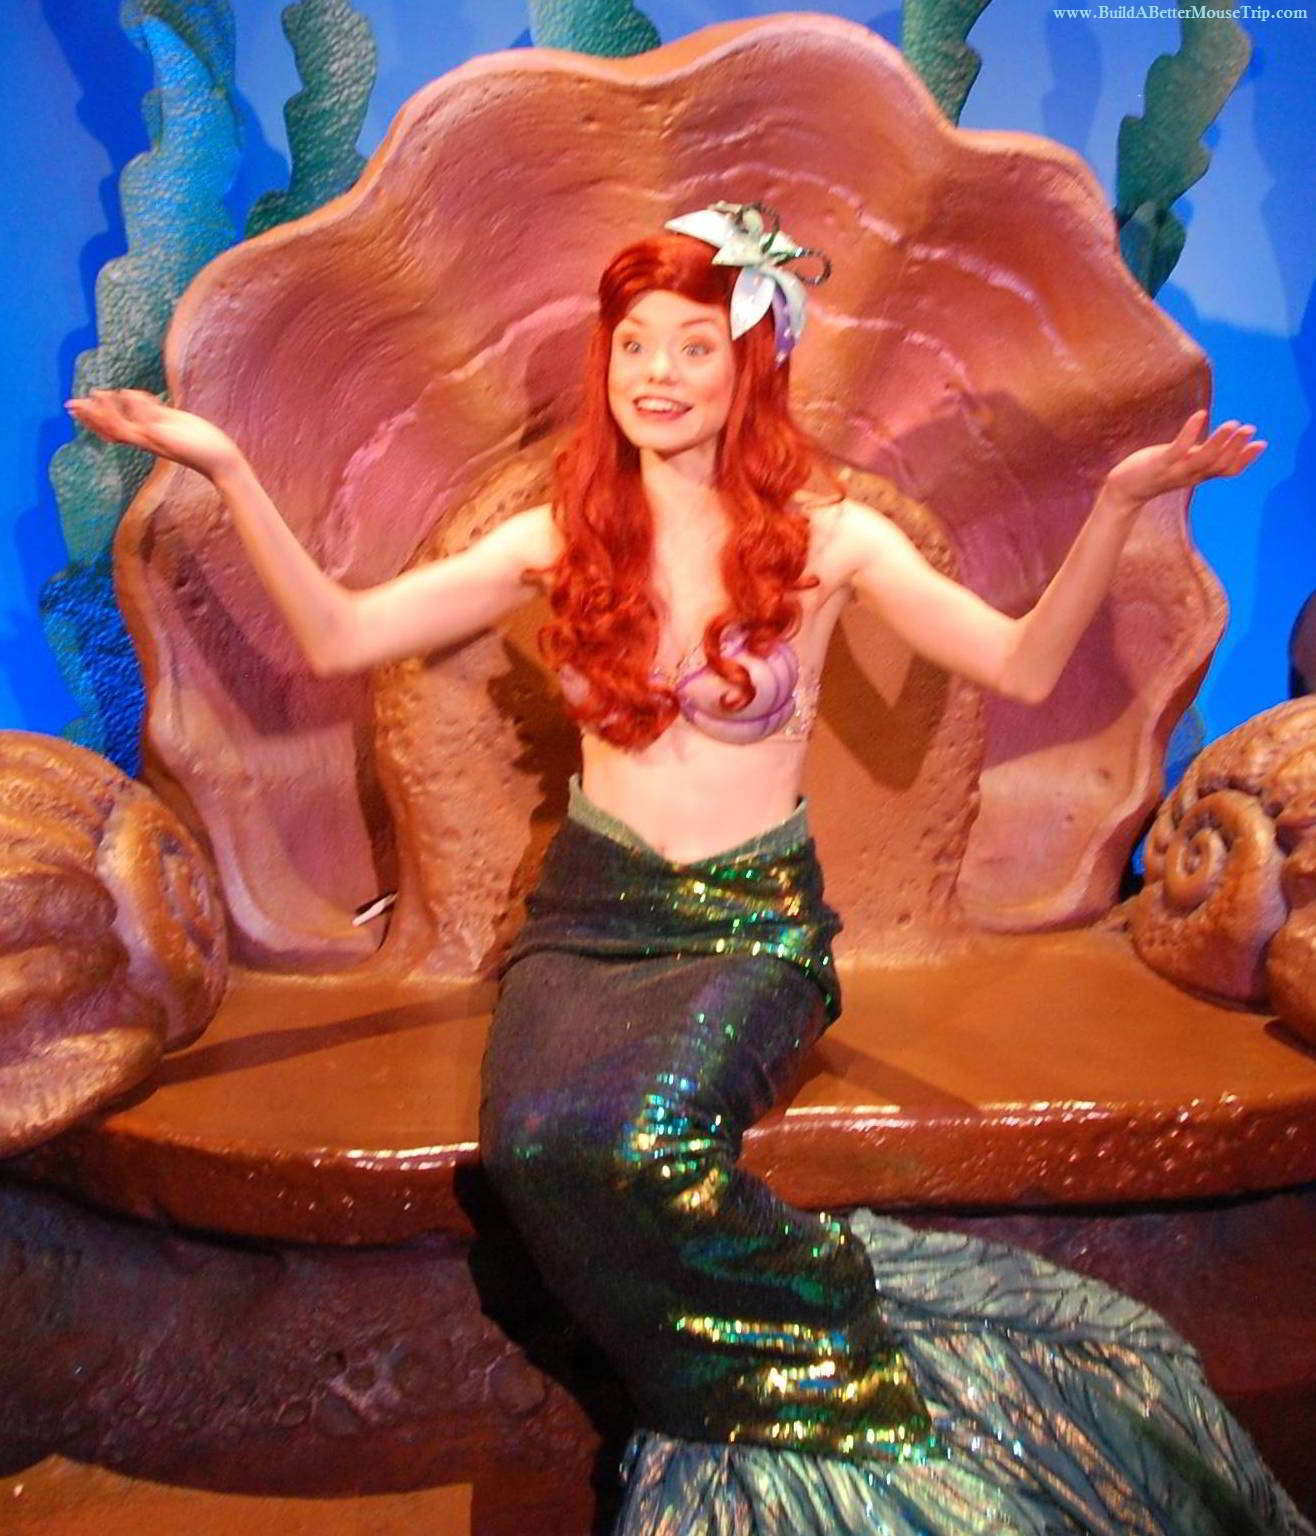 Ariel (The Little Mermaid) poses for photos and signs autographs at her grotto in the Magic Kingdom.